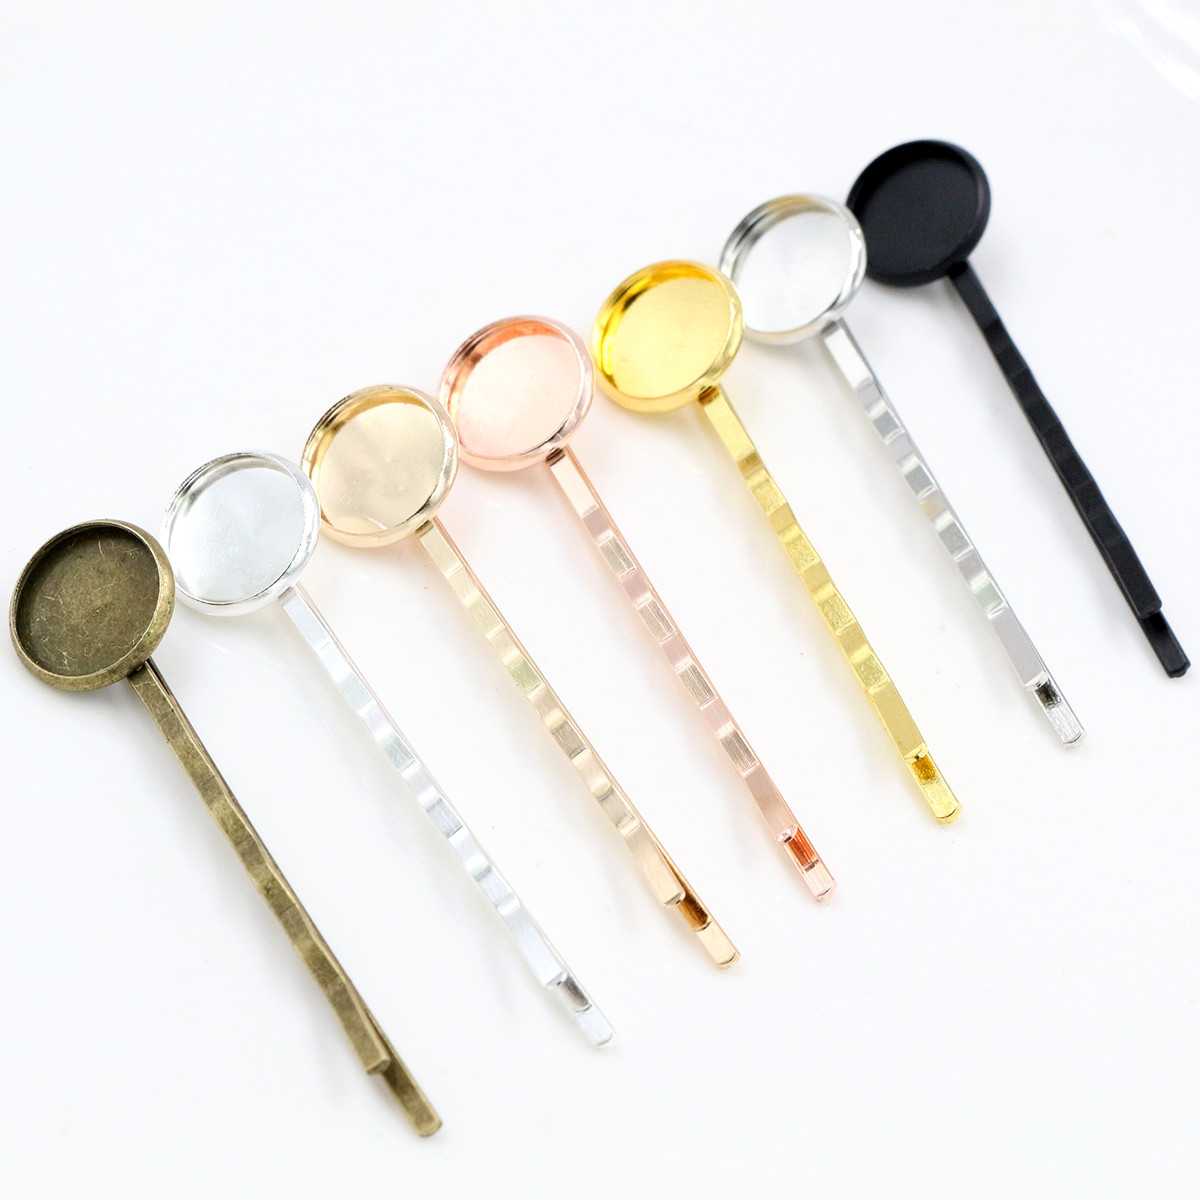 12mm 10pcs High Quality Classic 8 Colors Plated Copper Material Hairpin Hair Clips Hairpin Base Setting Cabochon Cameo